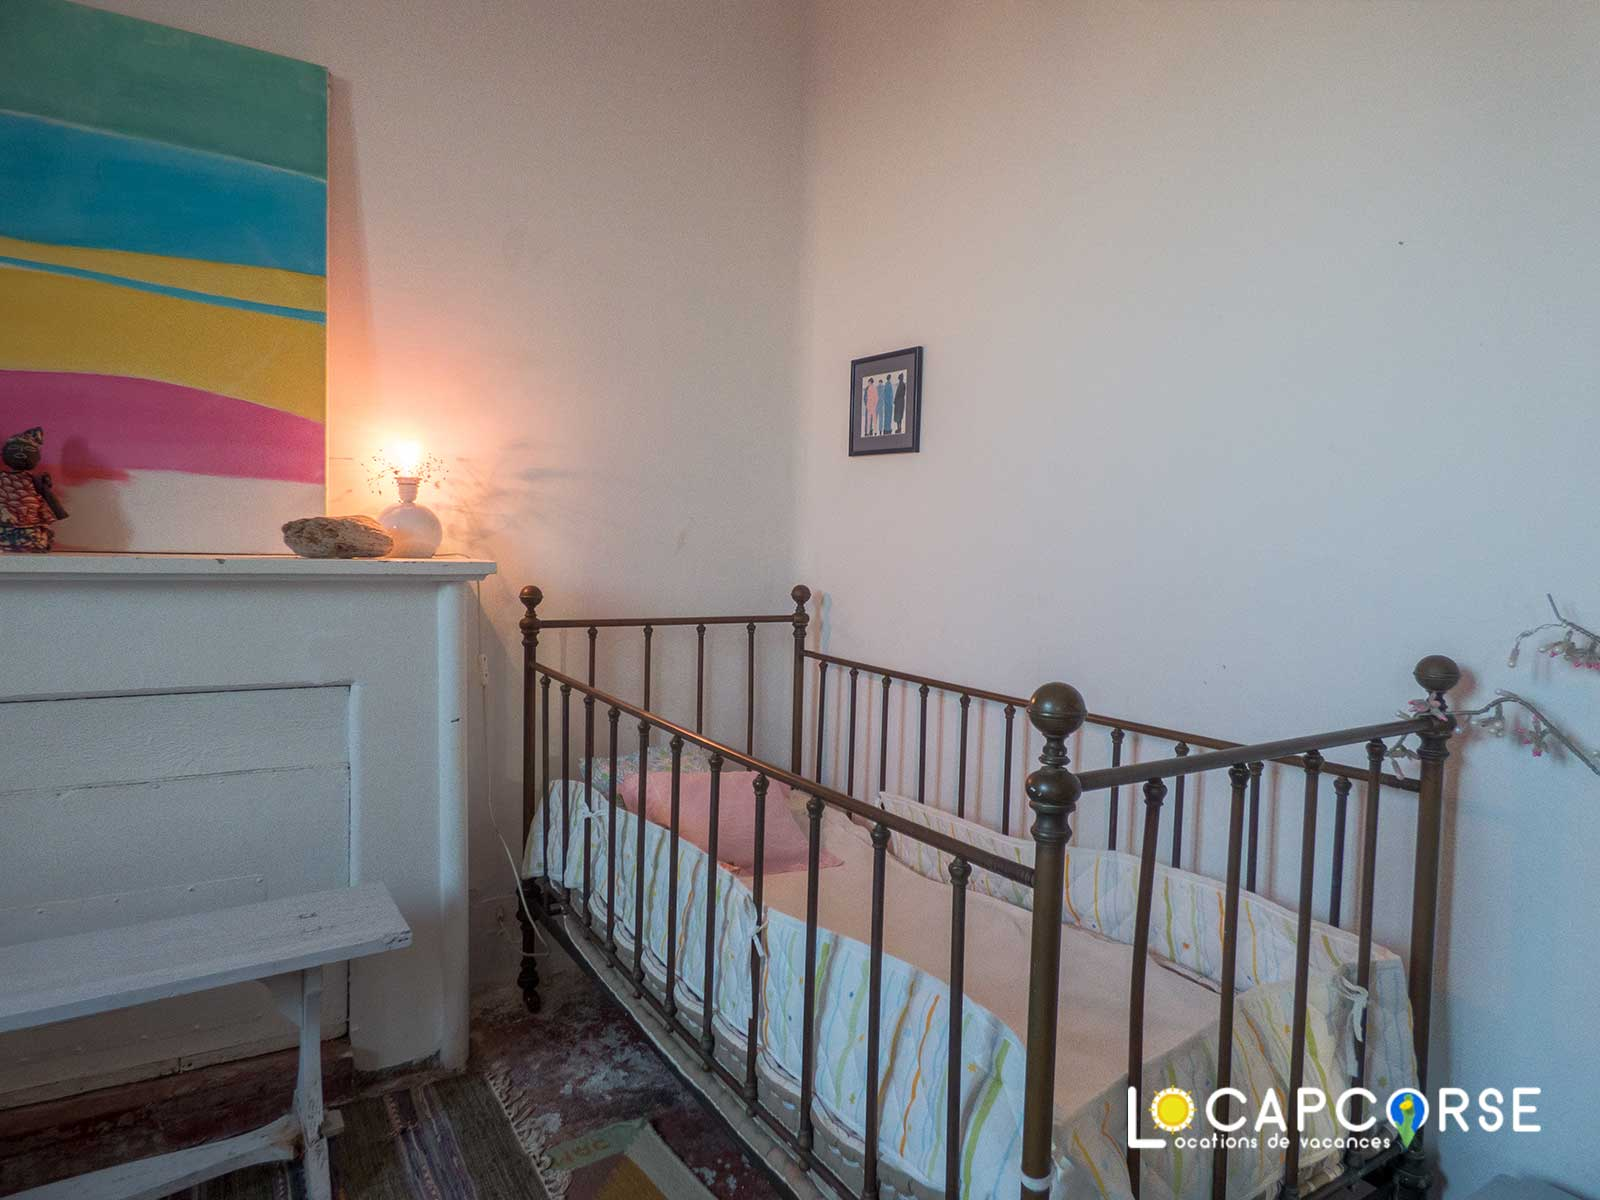 Locations Cap Corse - Another view of bedroom 4 in the older style - baby bed at your disposal